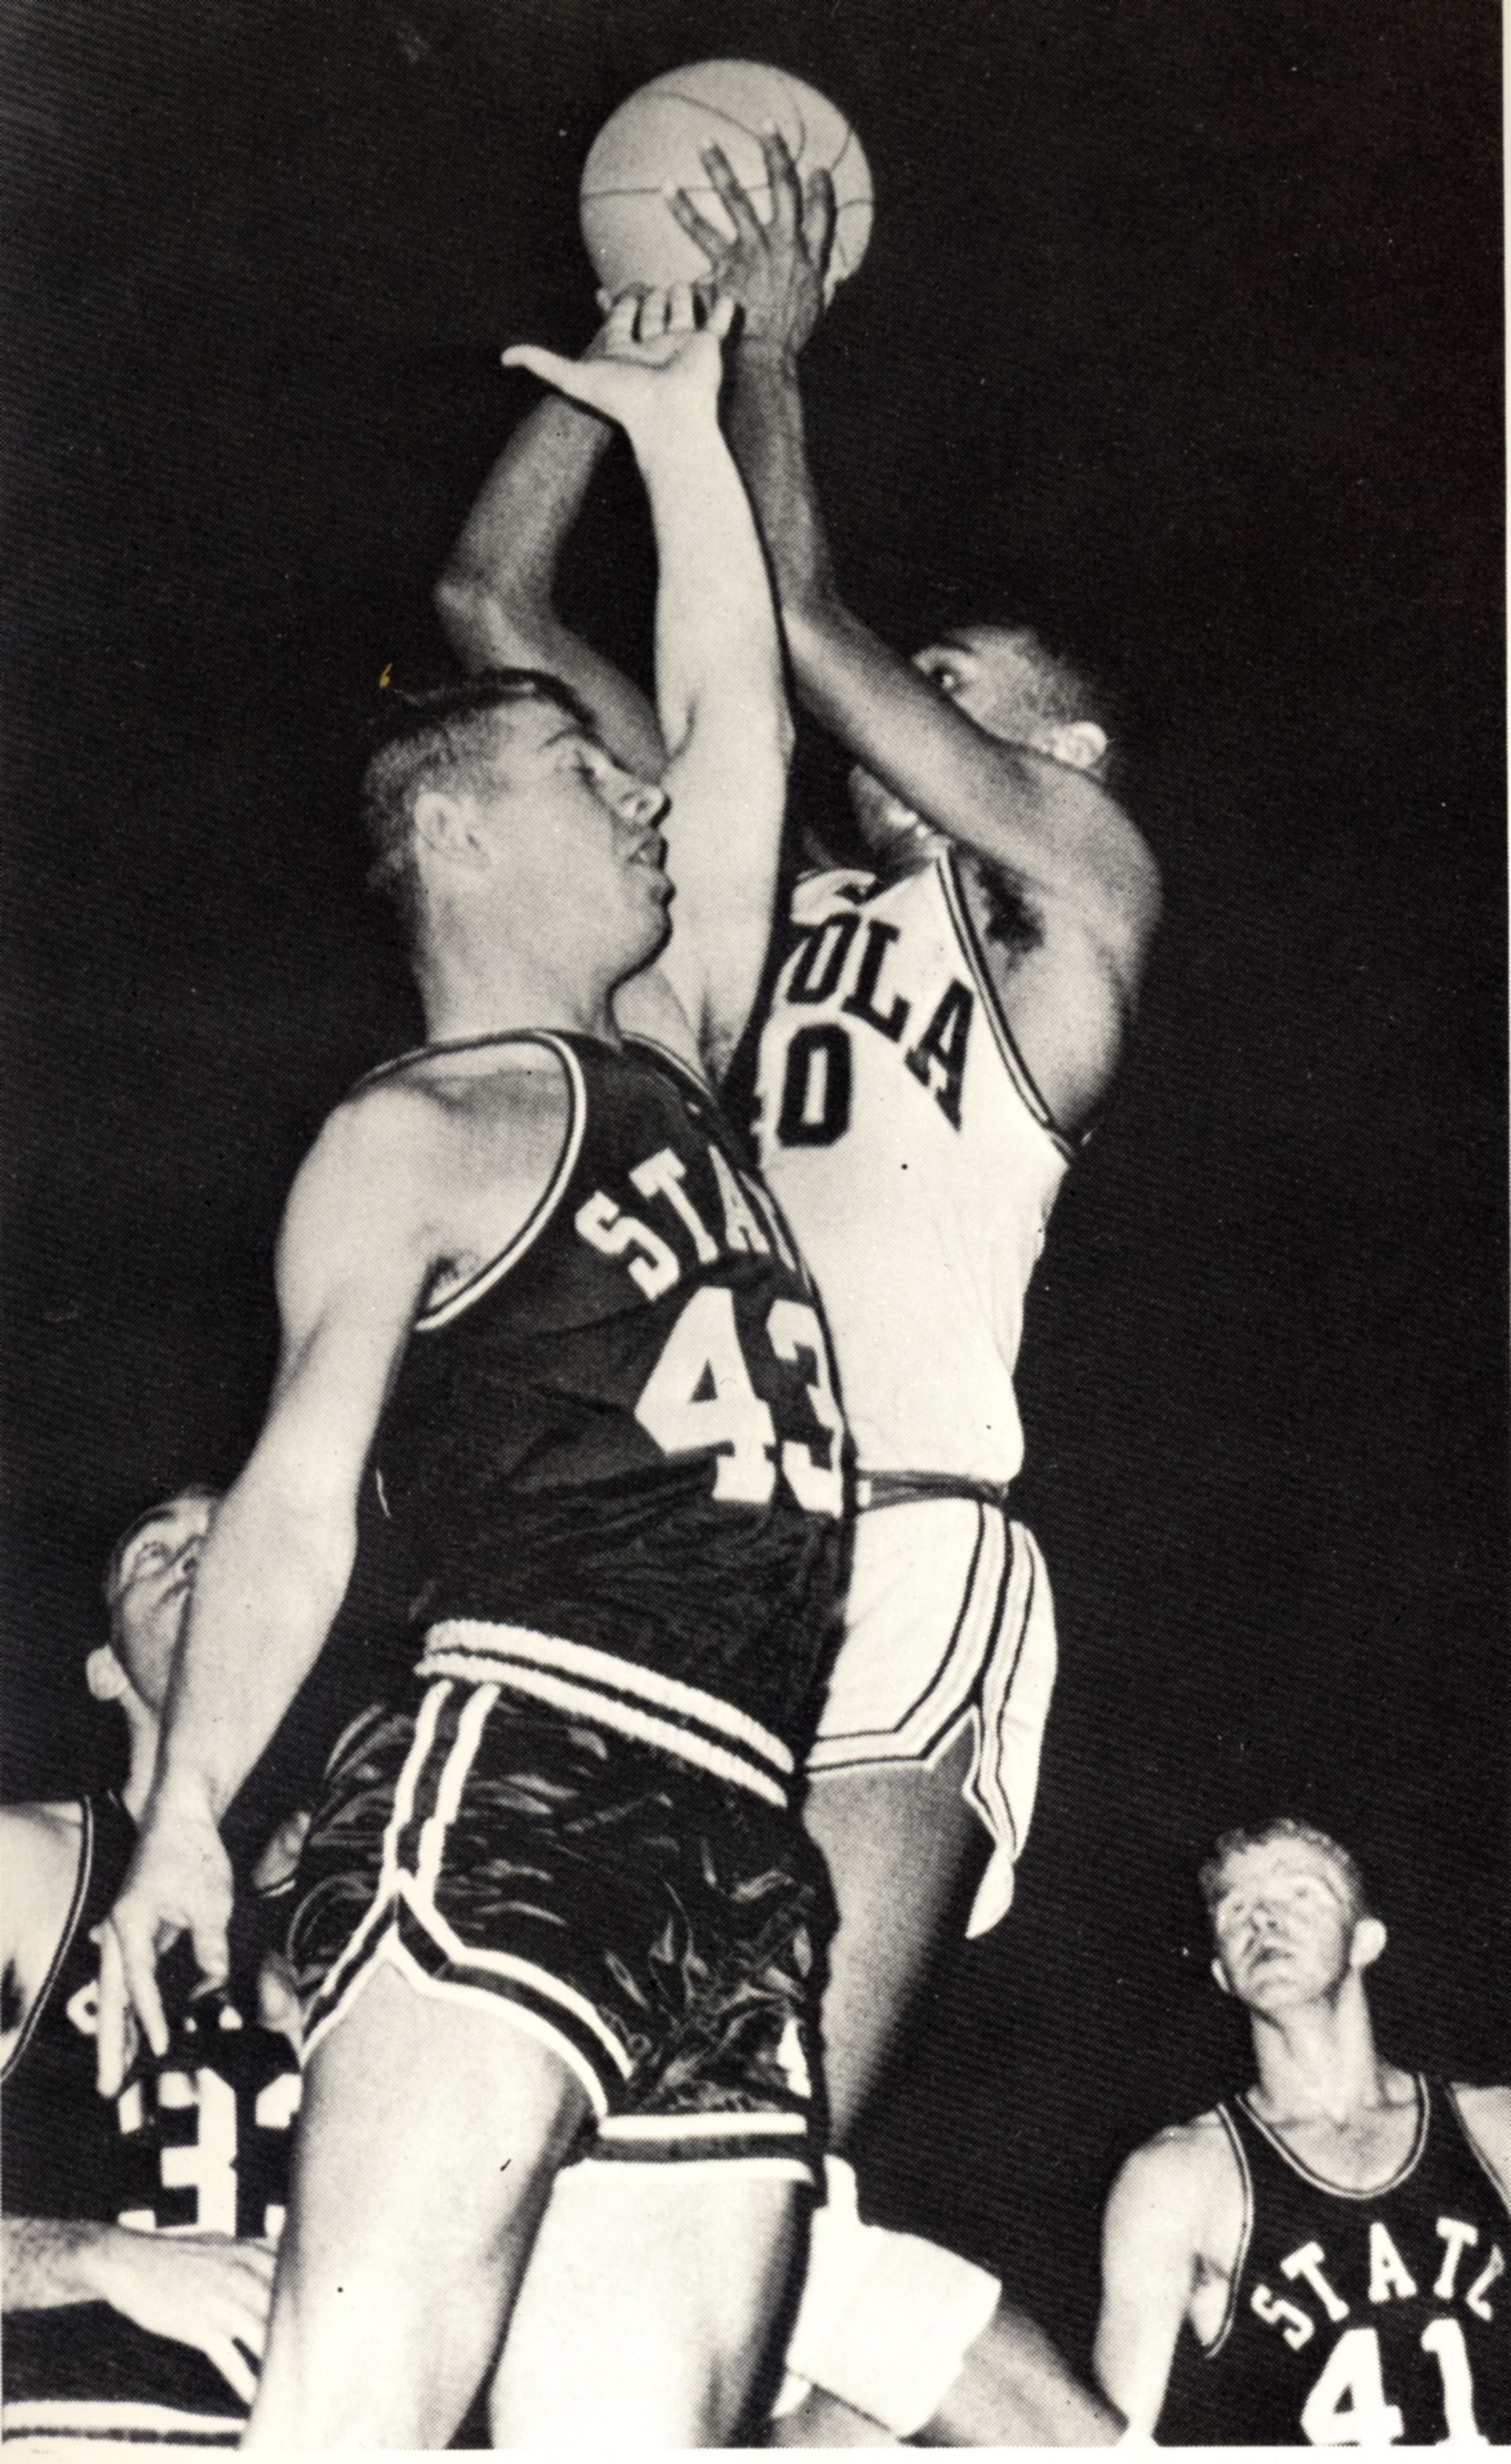 Loyola player Vic Rouse soars high for a basket against Mississippi State in the NCAA Regional Semi-finals. Image from the1963 Loyolan.